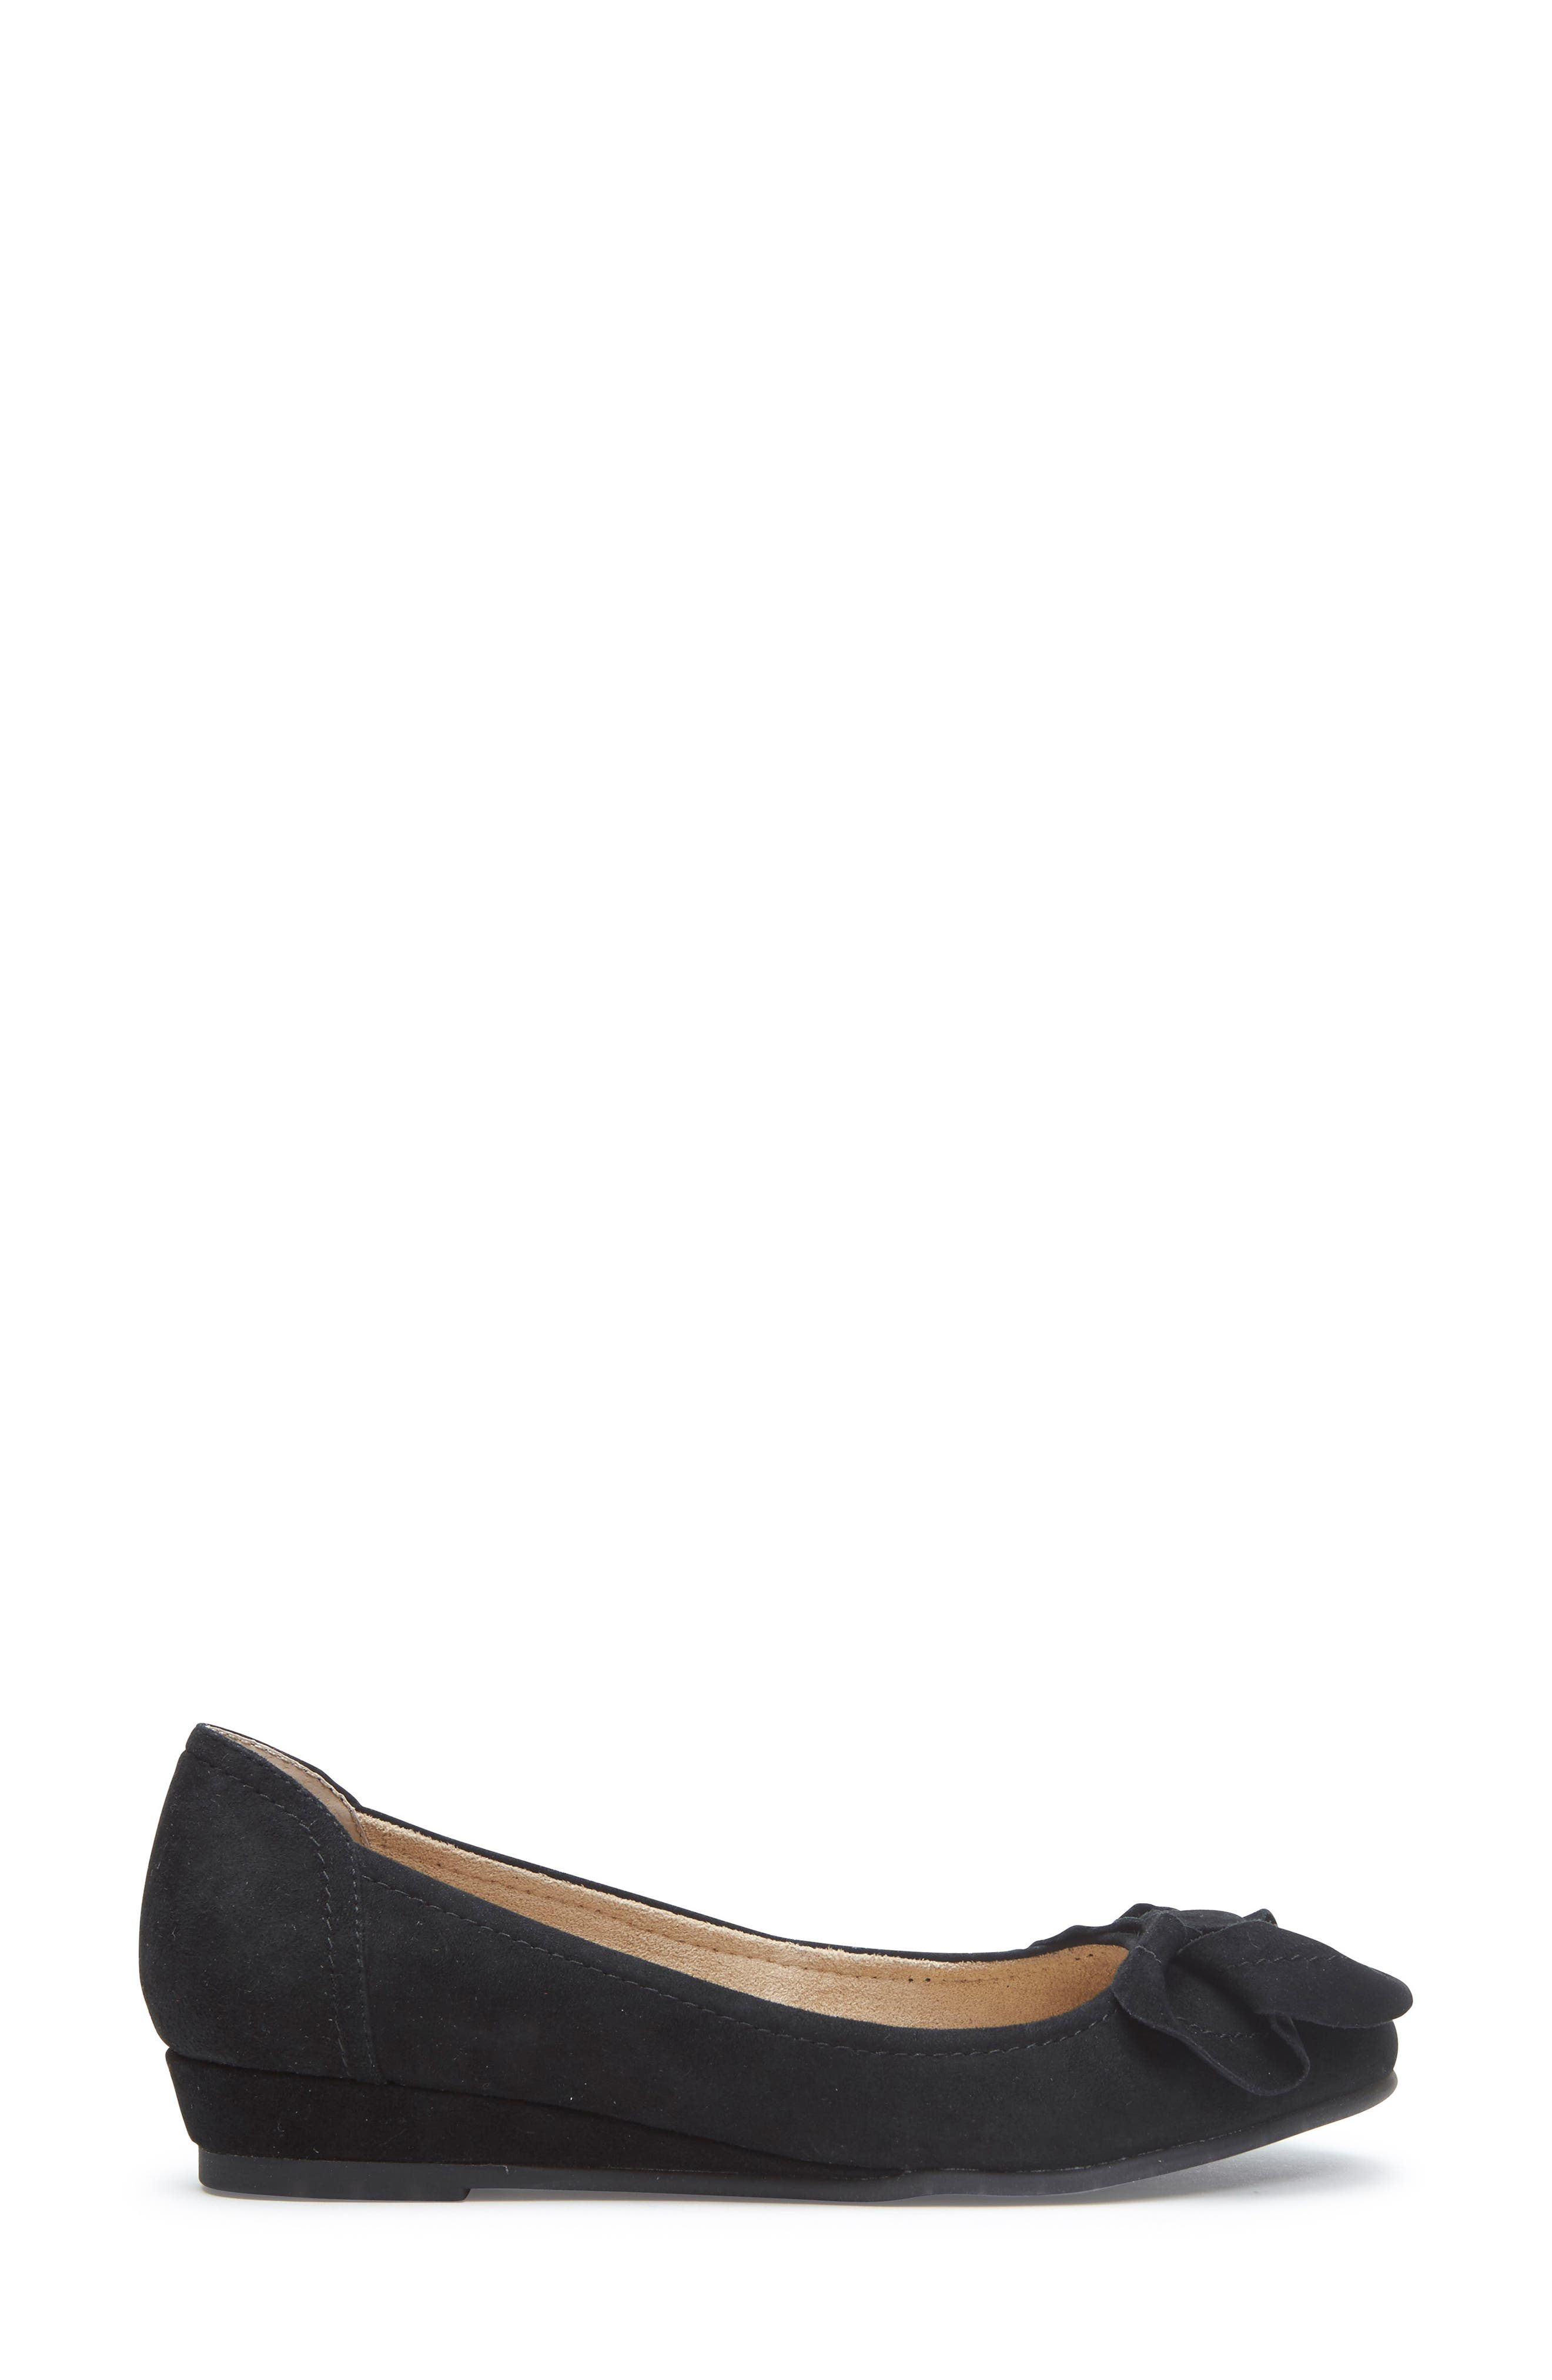 Martina Bow Ballet Wedge,                             Alternate thumbnail 4, color,                             Black Suede